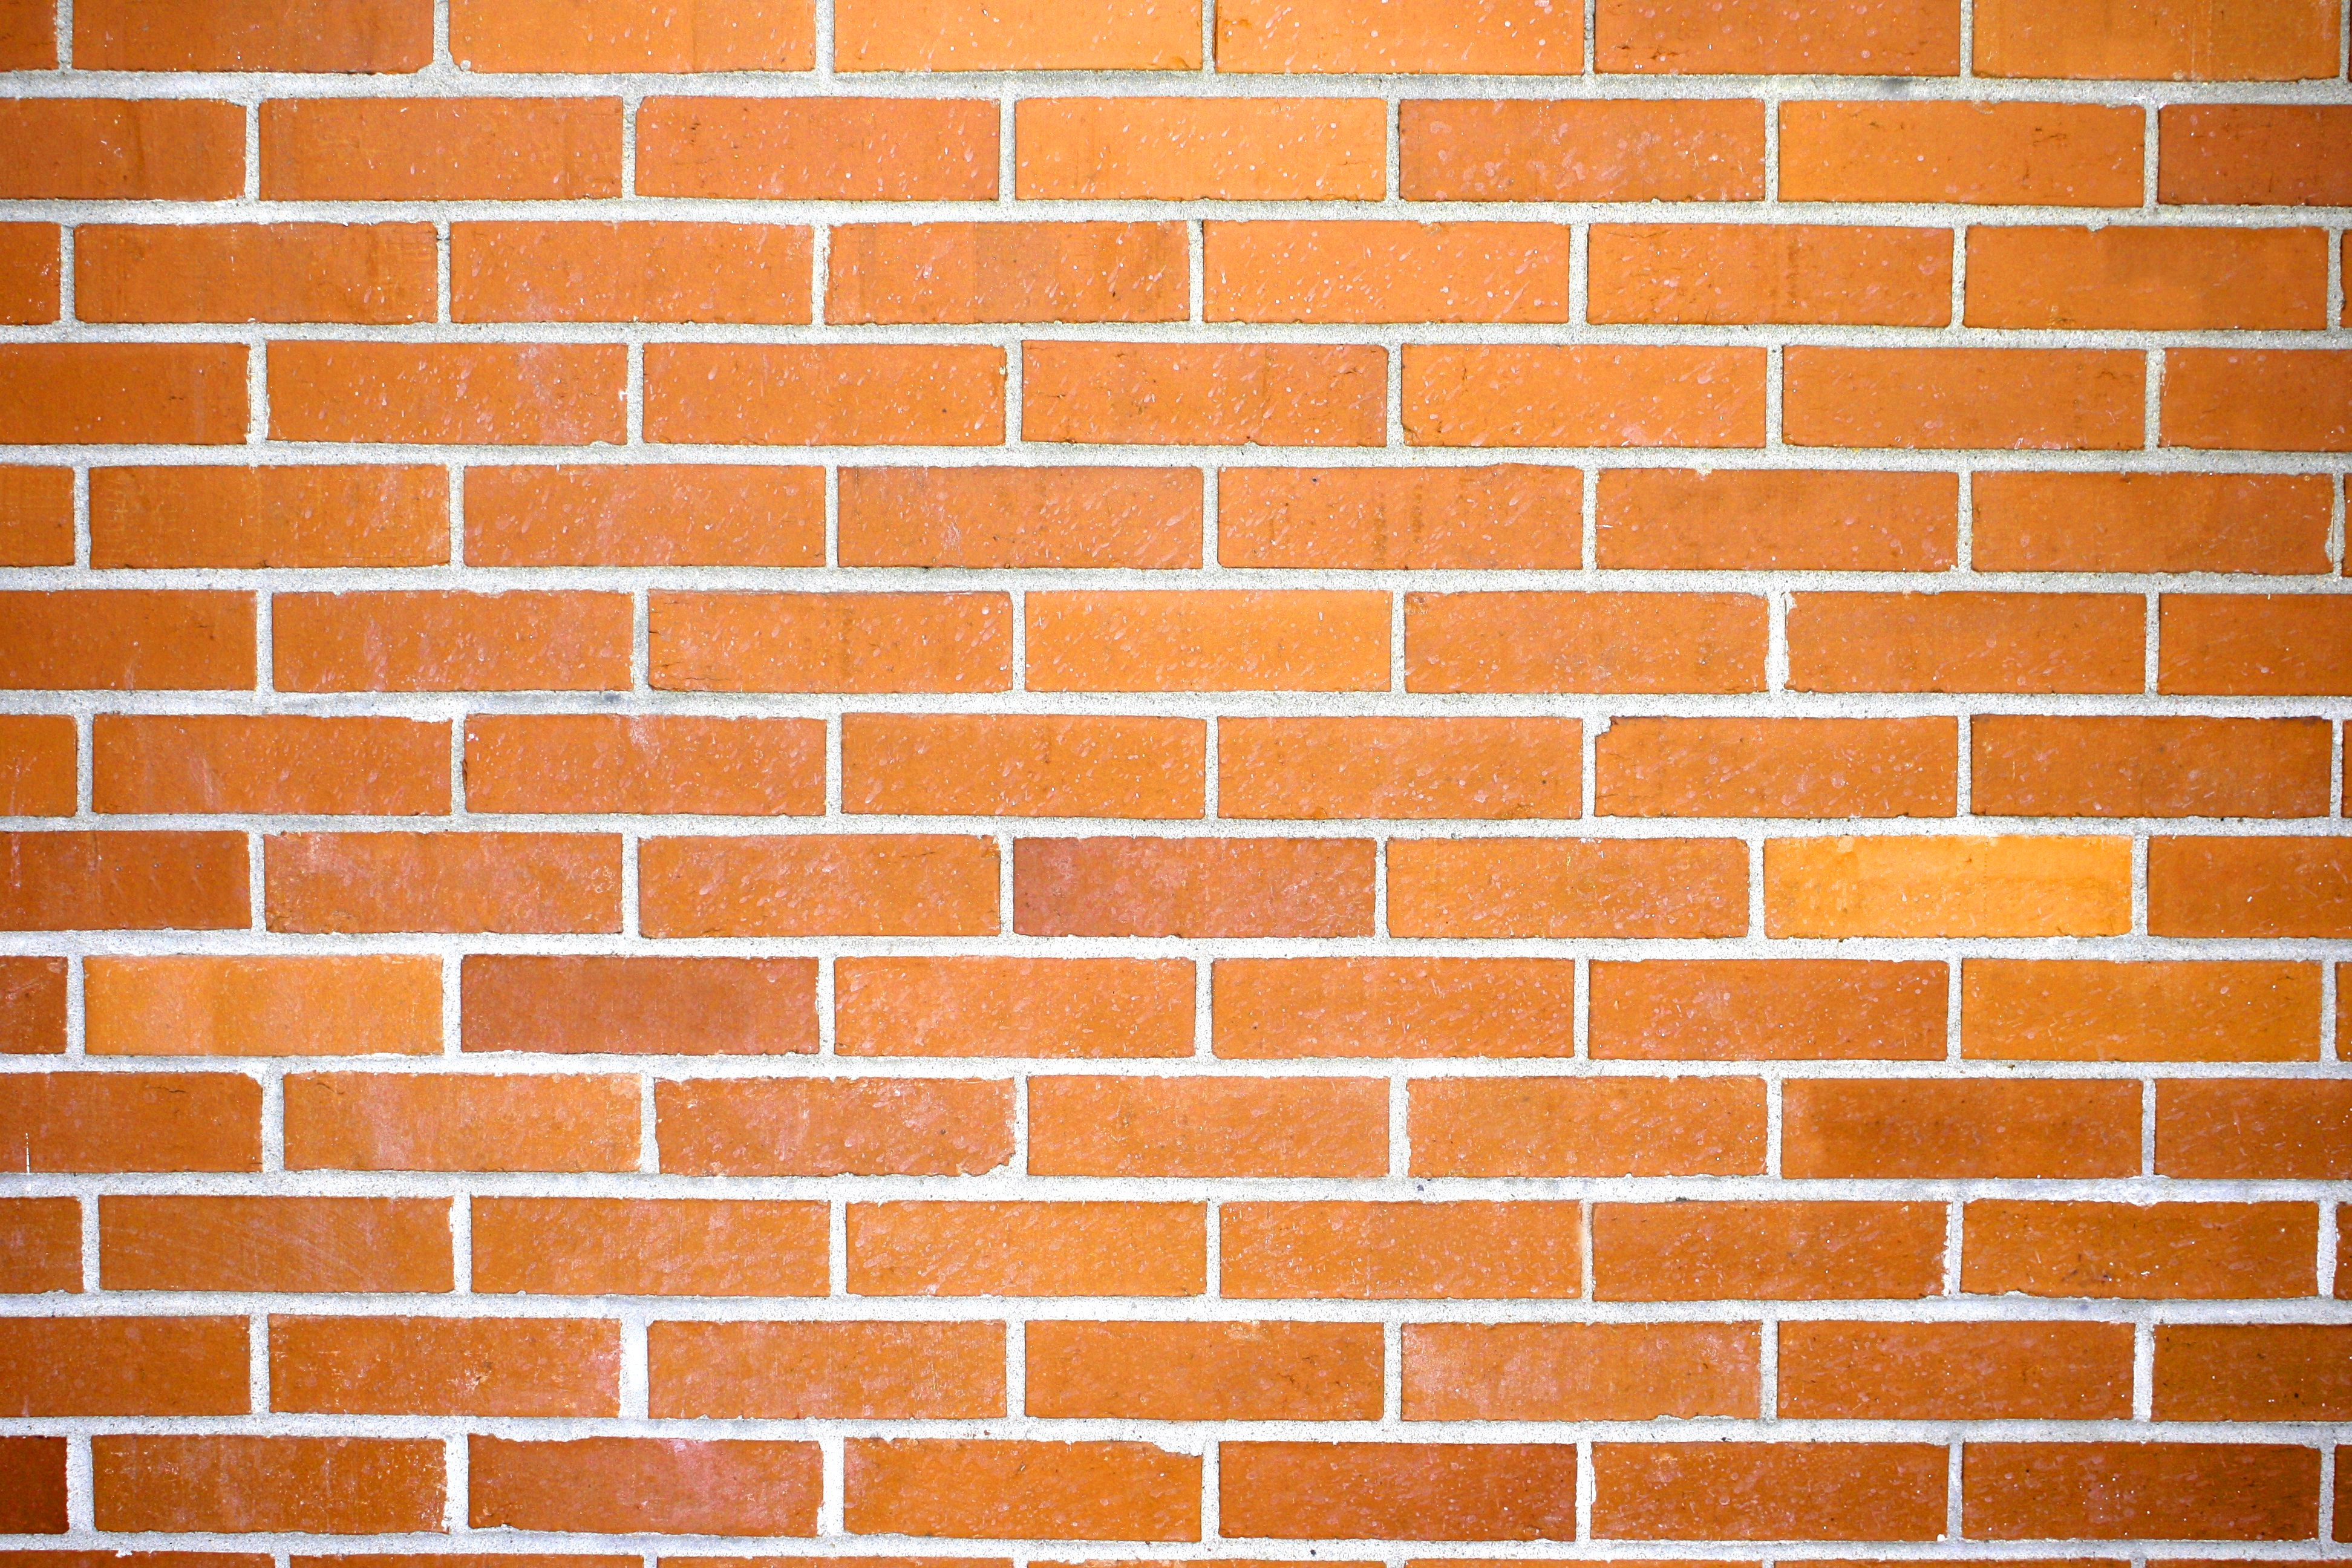 Wall clipart public domain svg library library Orange Brick Wall Texture Picture | Free Photograph | Photos ... svg library library